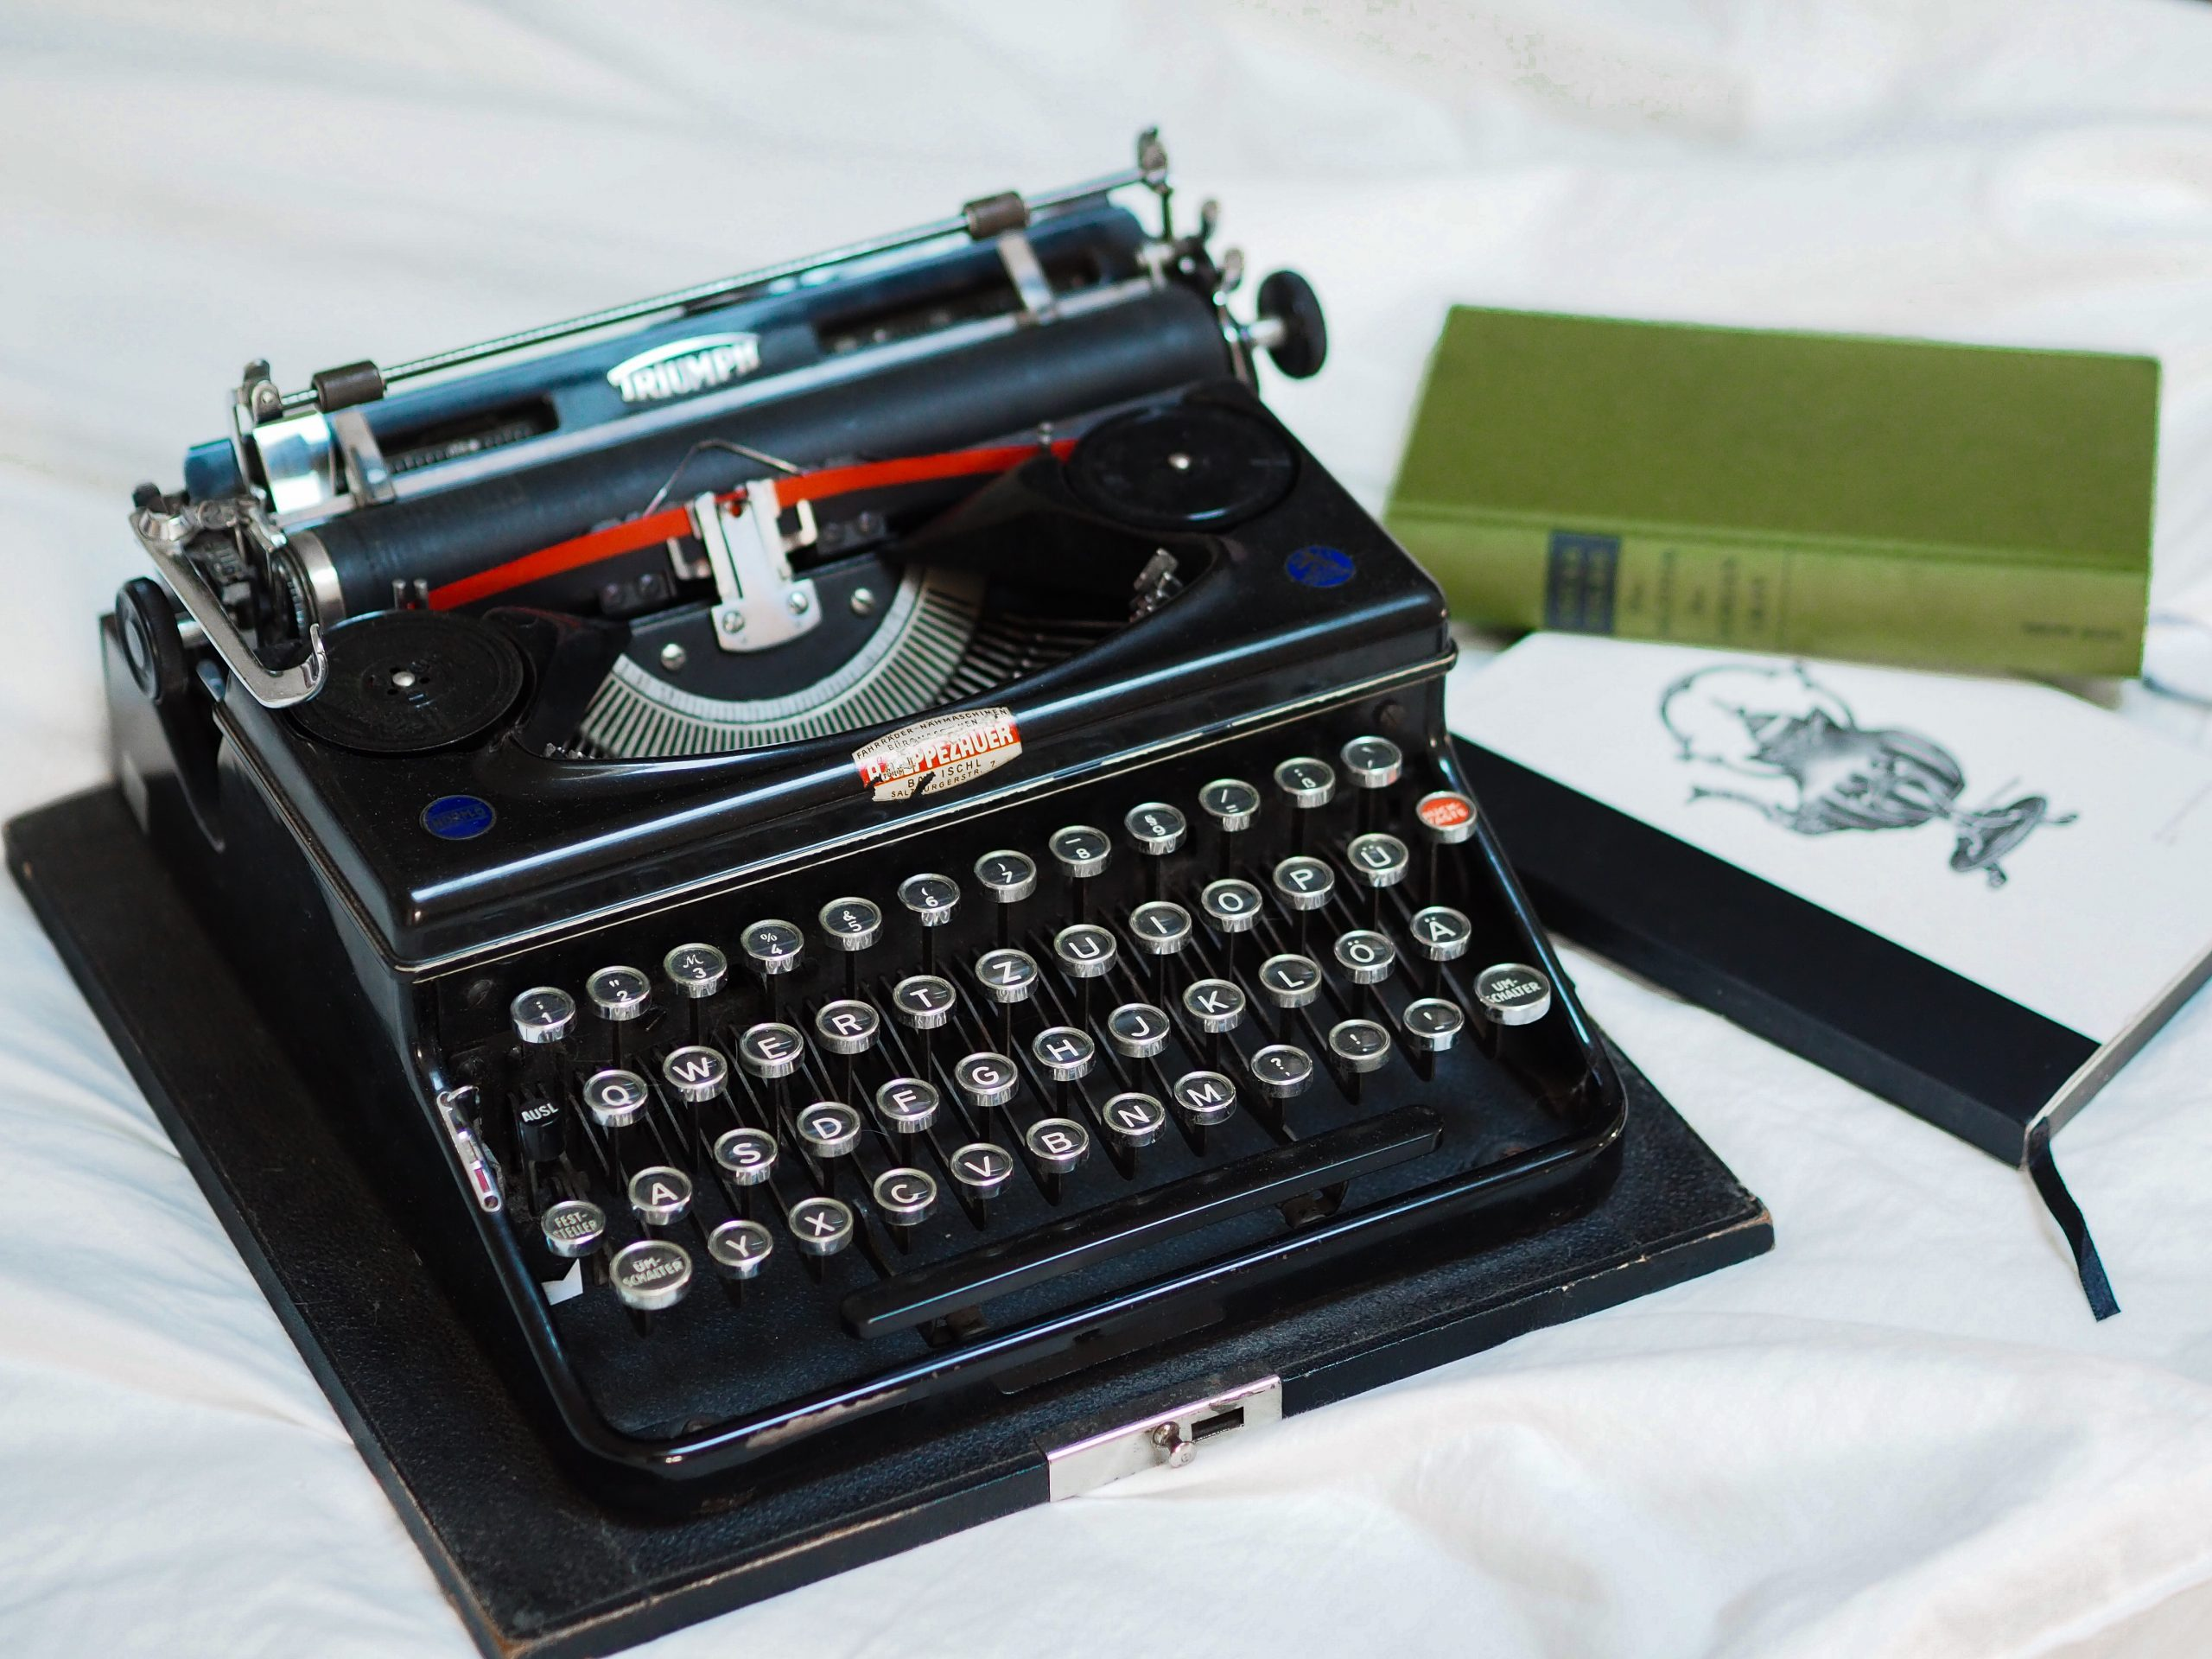 A black typewriter on a table with some books